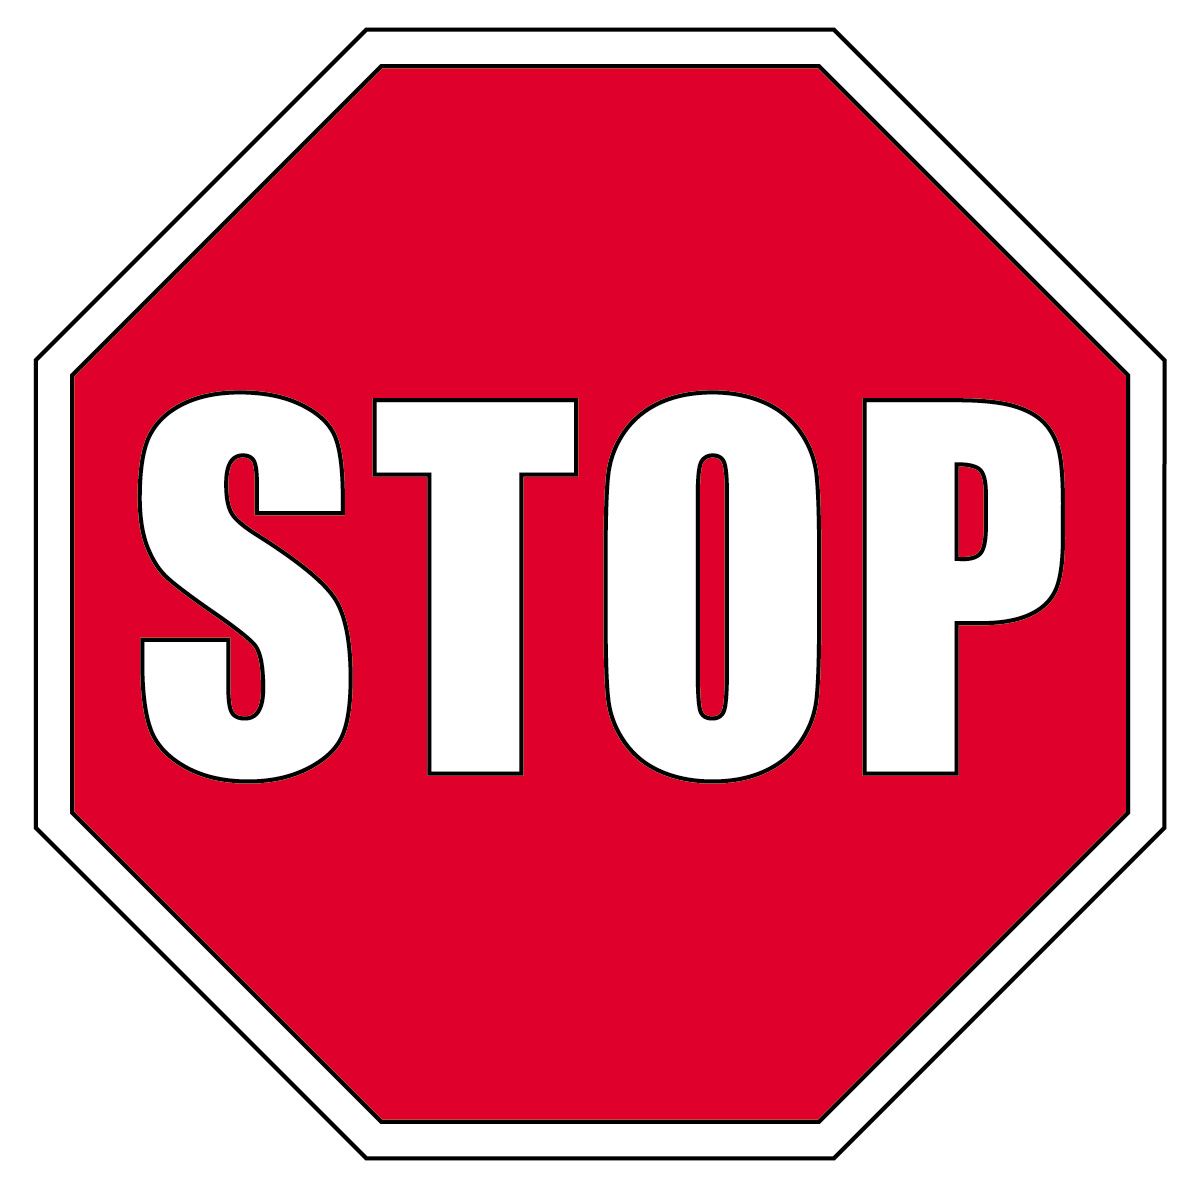 Clip Art  Signs  Stop Sign B W   Abcteach